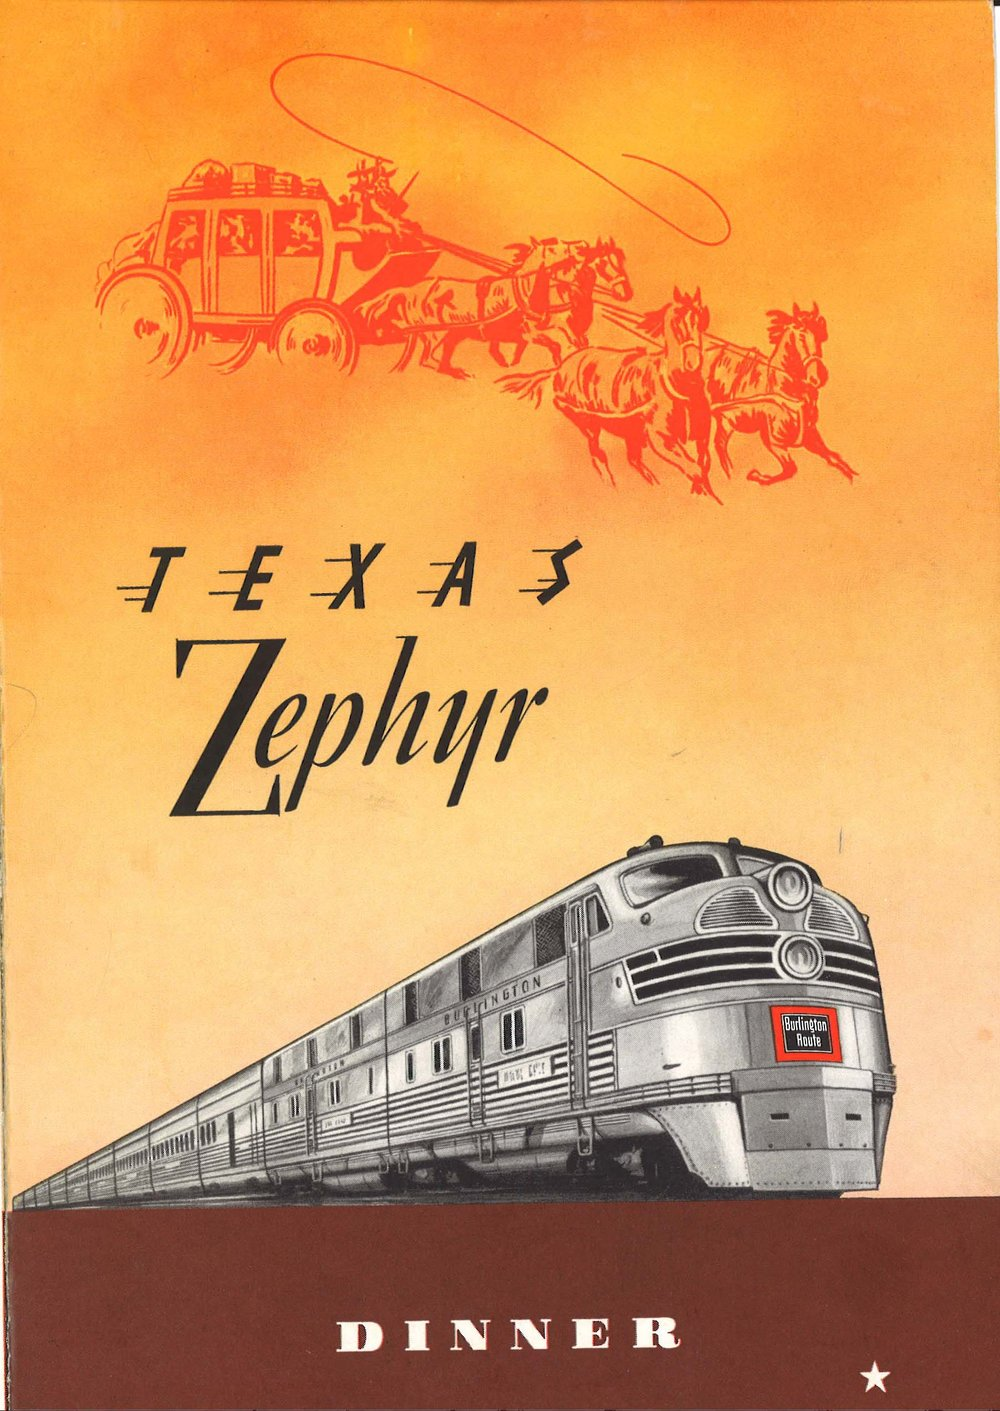 Burlington Texas Zephyr Dinner Menu 1.jpg